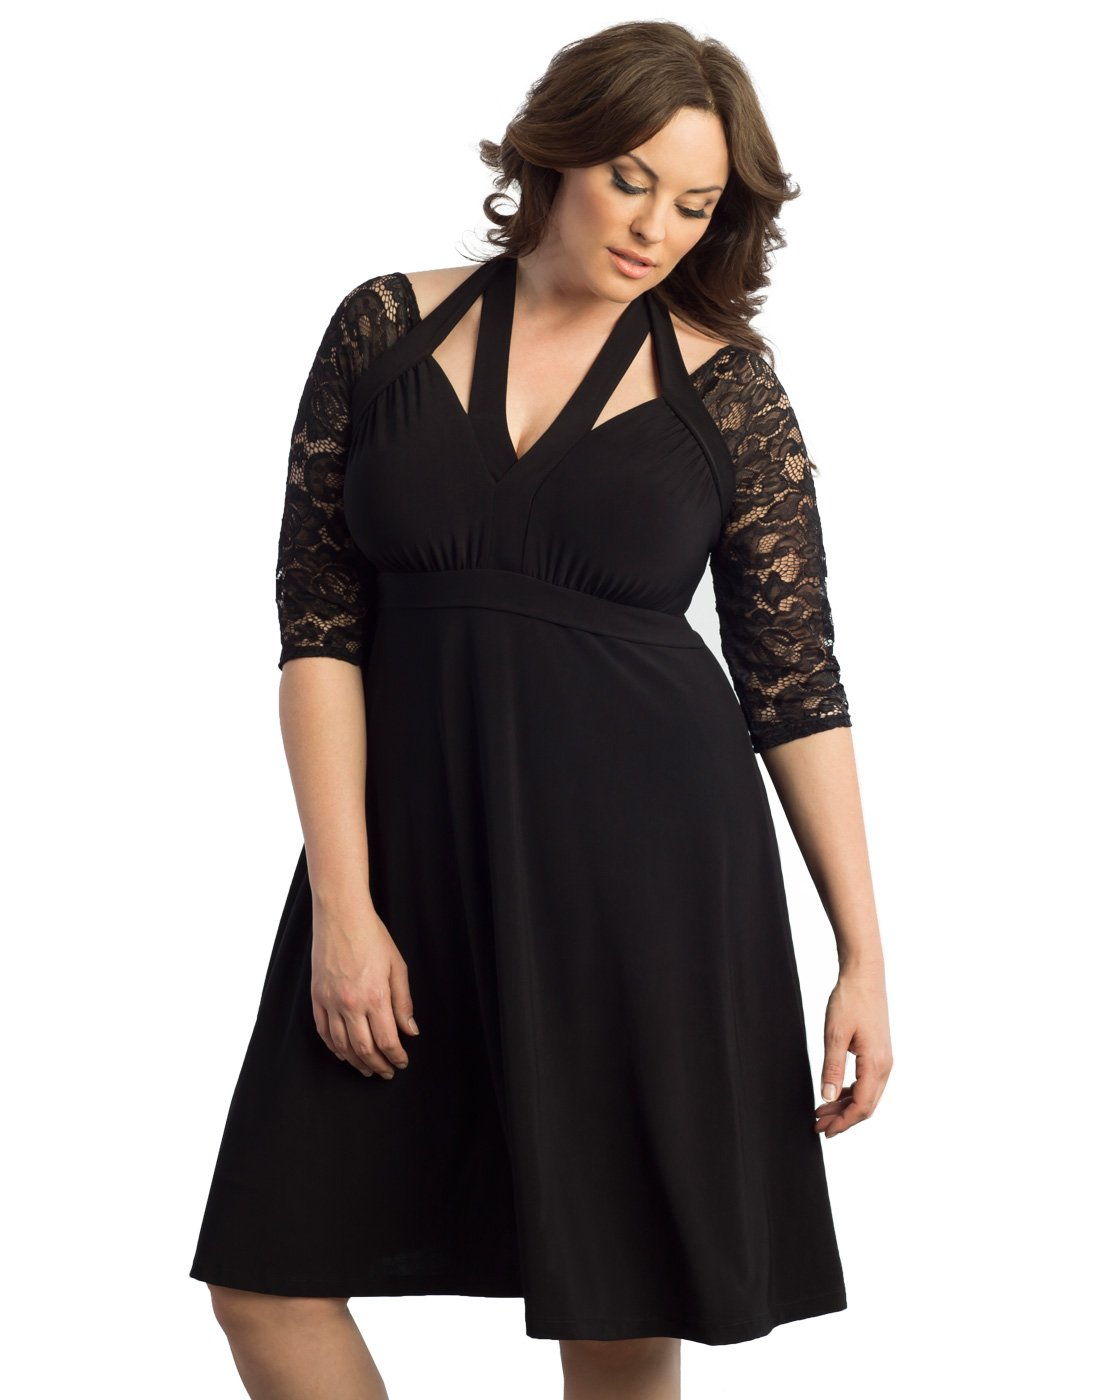 Kiyonna Women's Plus Size LURING Lace Dress 1X Black Noir by Kiyonna Clothing